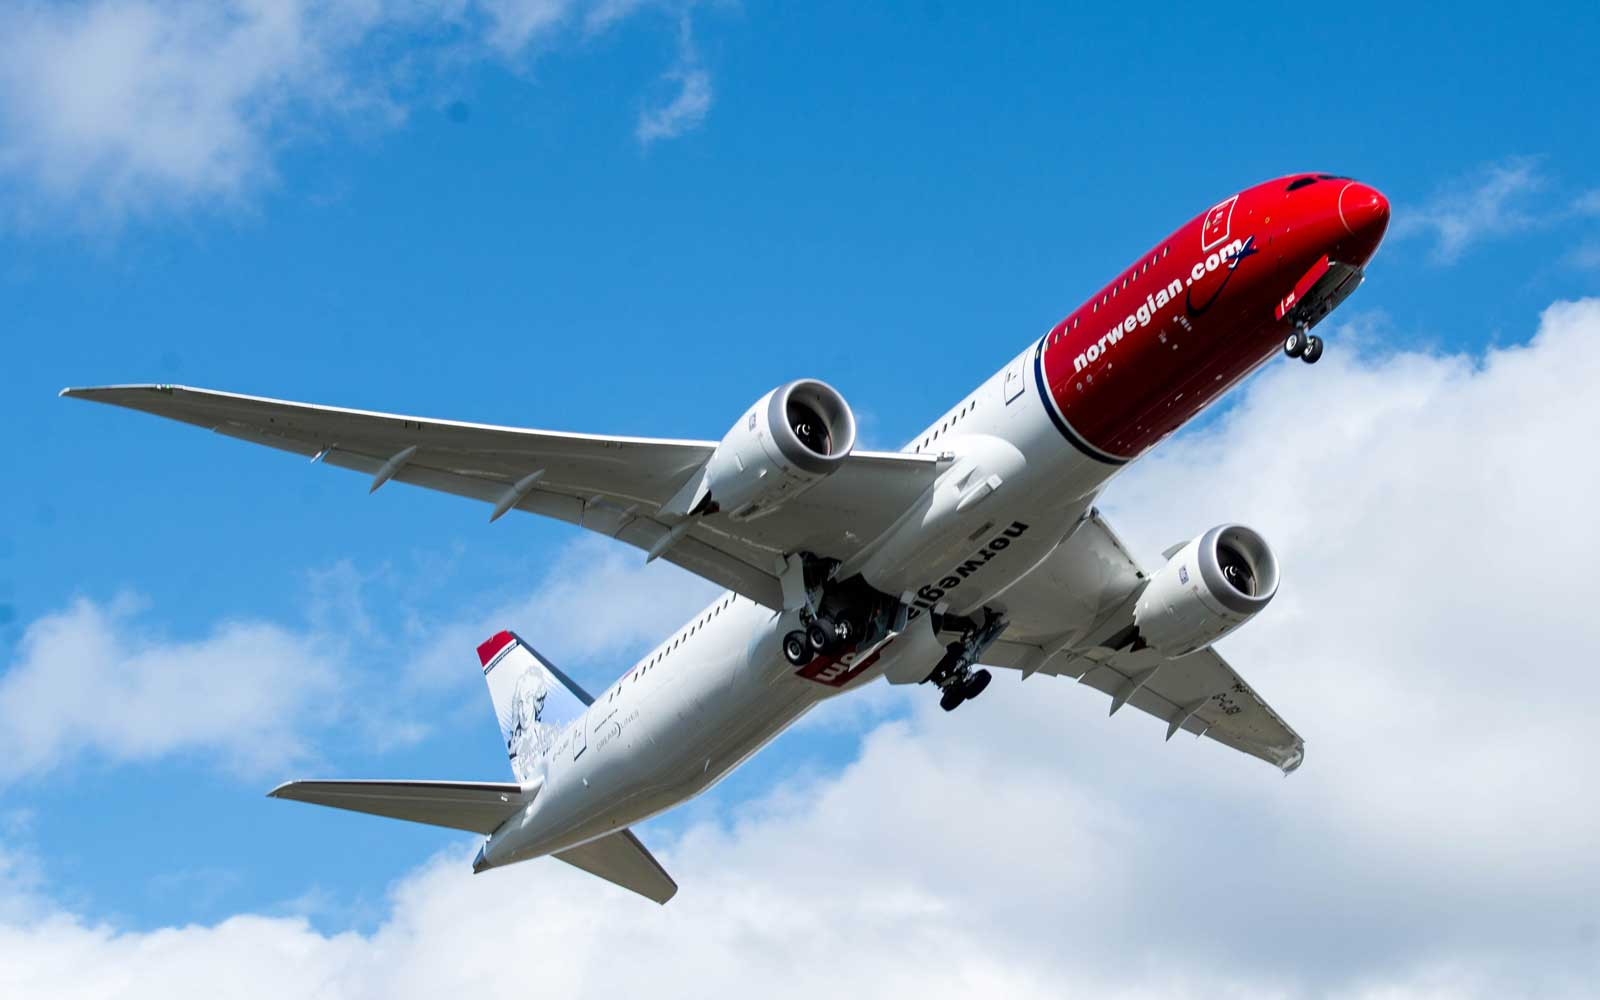 Norwegian airplane in flight